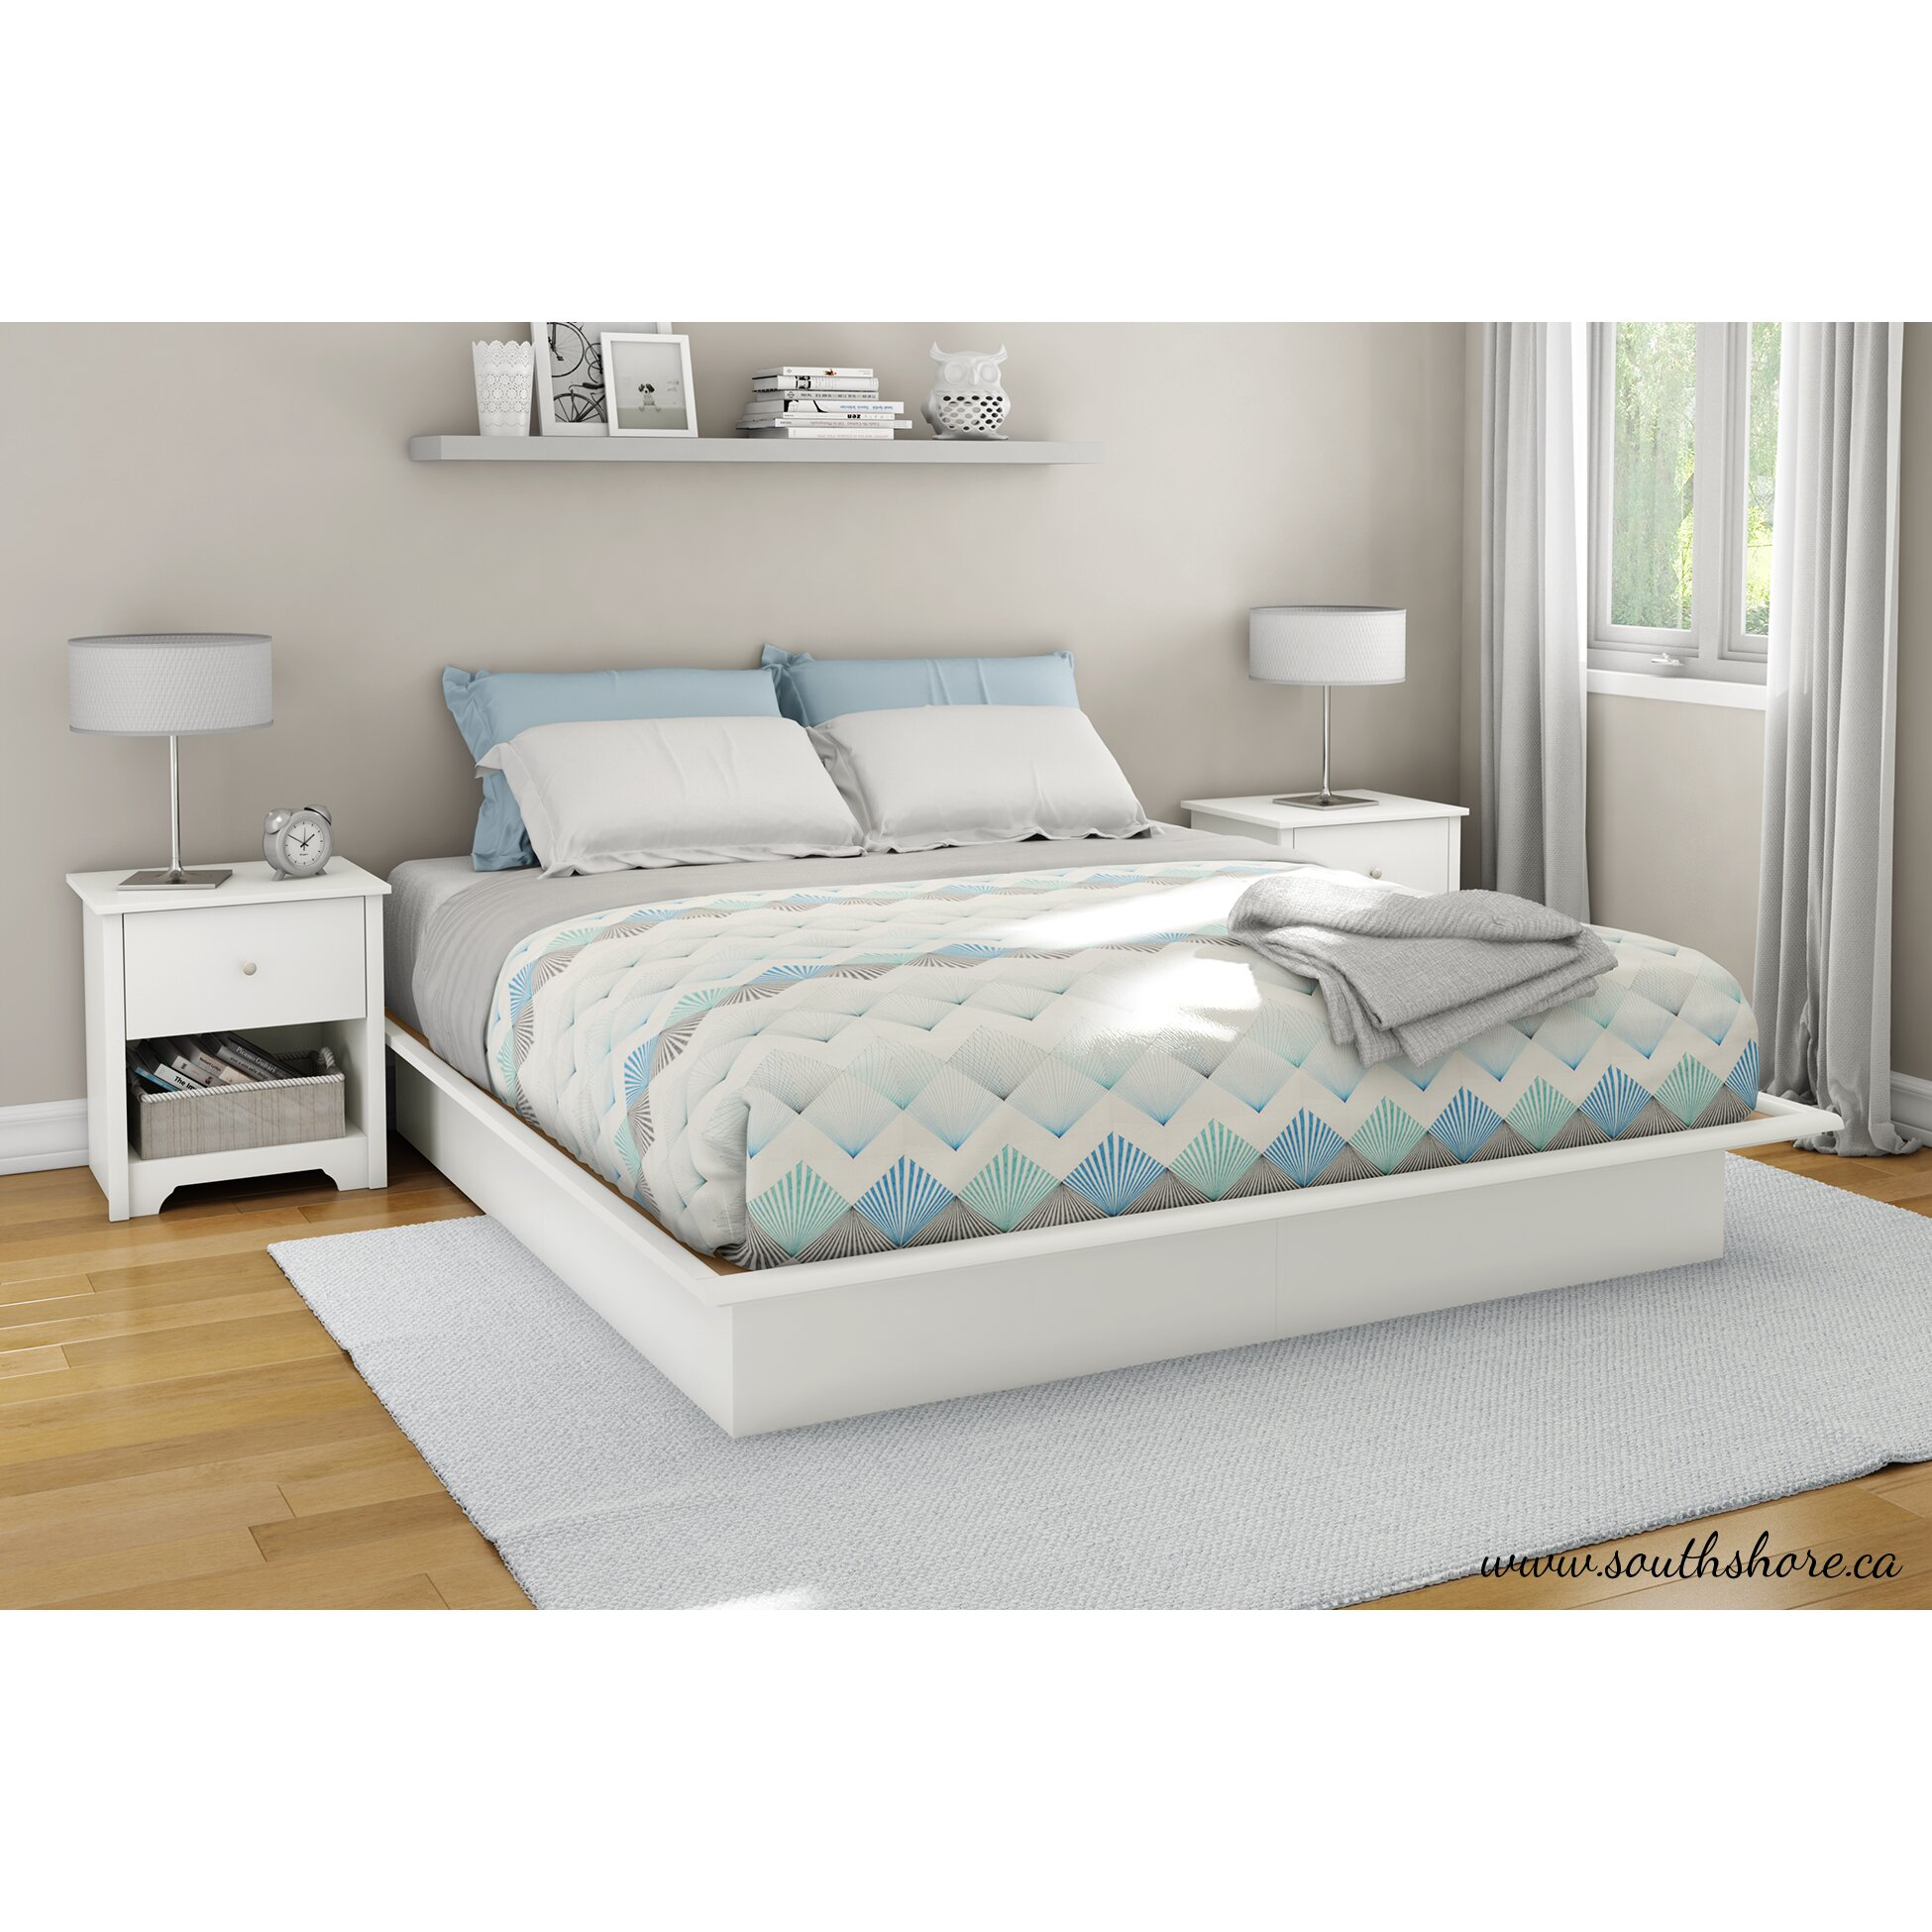 south shore newbury storage platform bed